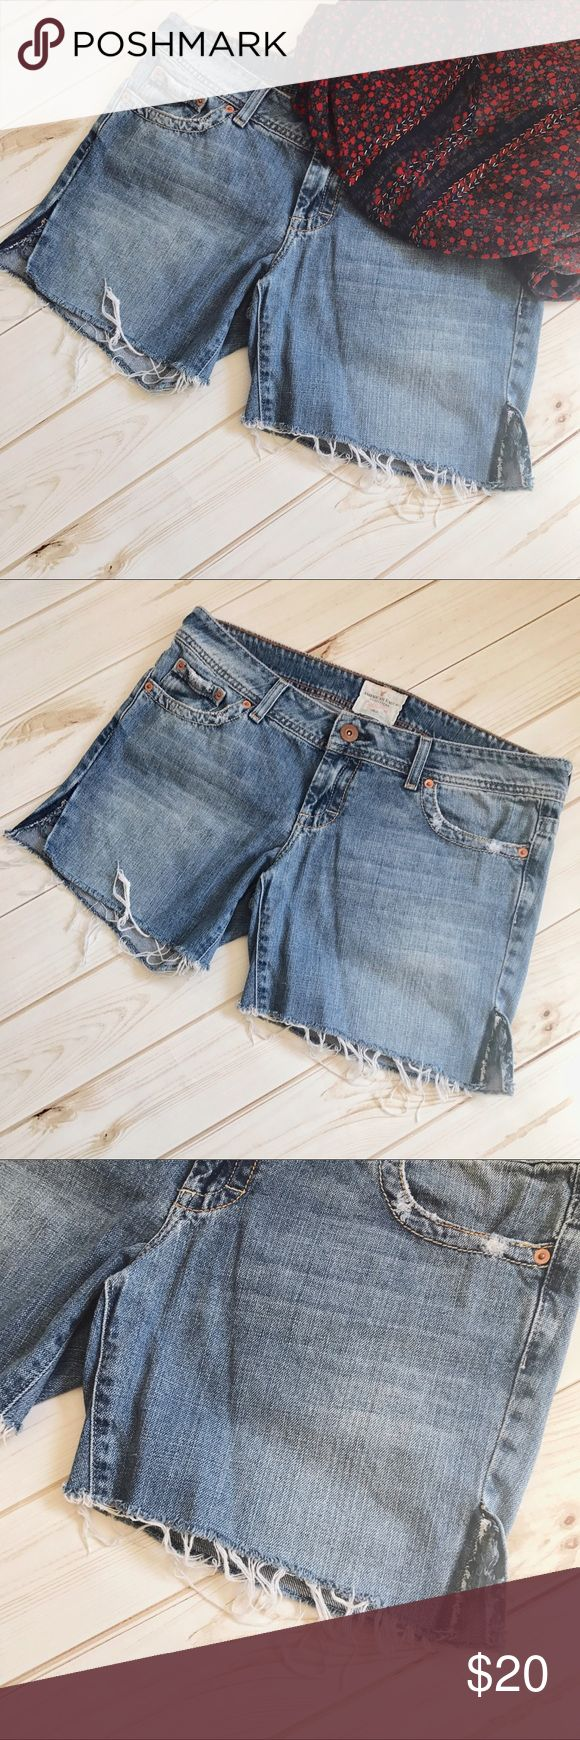 """American Eagle Distressed Jean Shorts Comfy, distressed American Eagle Outfitters five-pocket, cutoff jean shorts. Features distressed bottoms, side slits & distressing on pockets. AOE targets juniors, so most likely these fit like Juniors sizing, but please refer to measurements to be sure. Flat measurements: inseam 6""""; rise 3""""; waist 18.5""""; hips 20.5"""". Preloved and in good condition. NO TRADES. Please ask questions or request additional photos prior to purchasing. American Eagle Outfitters…"""